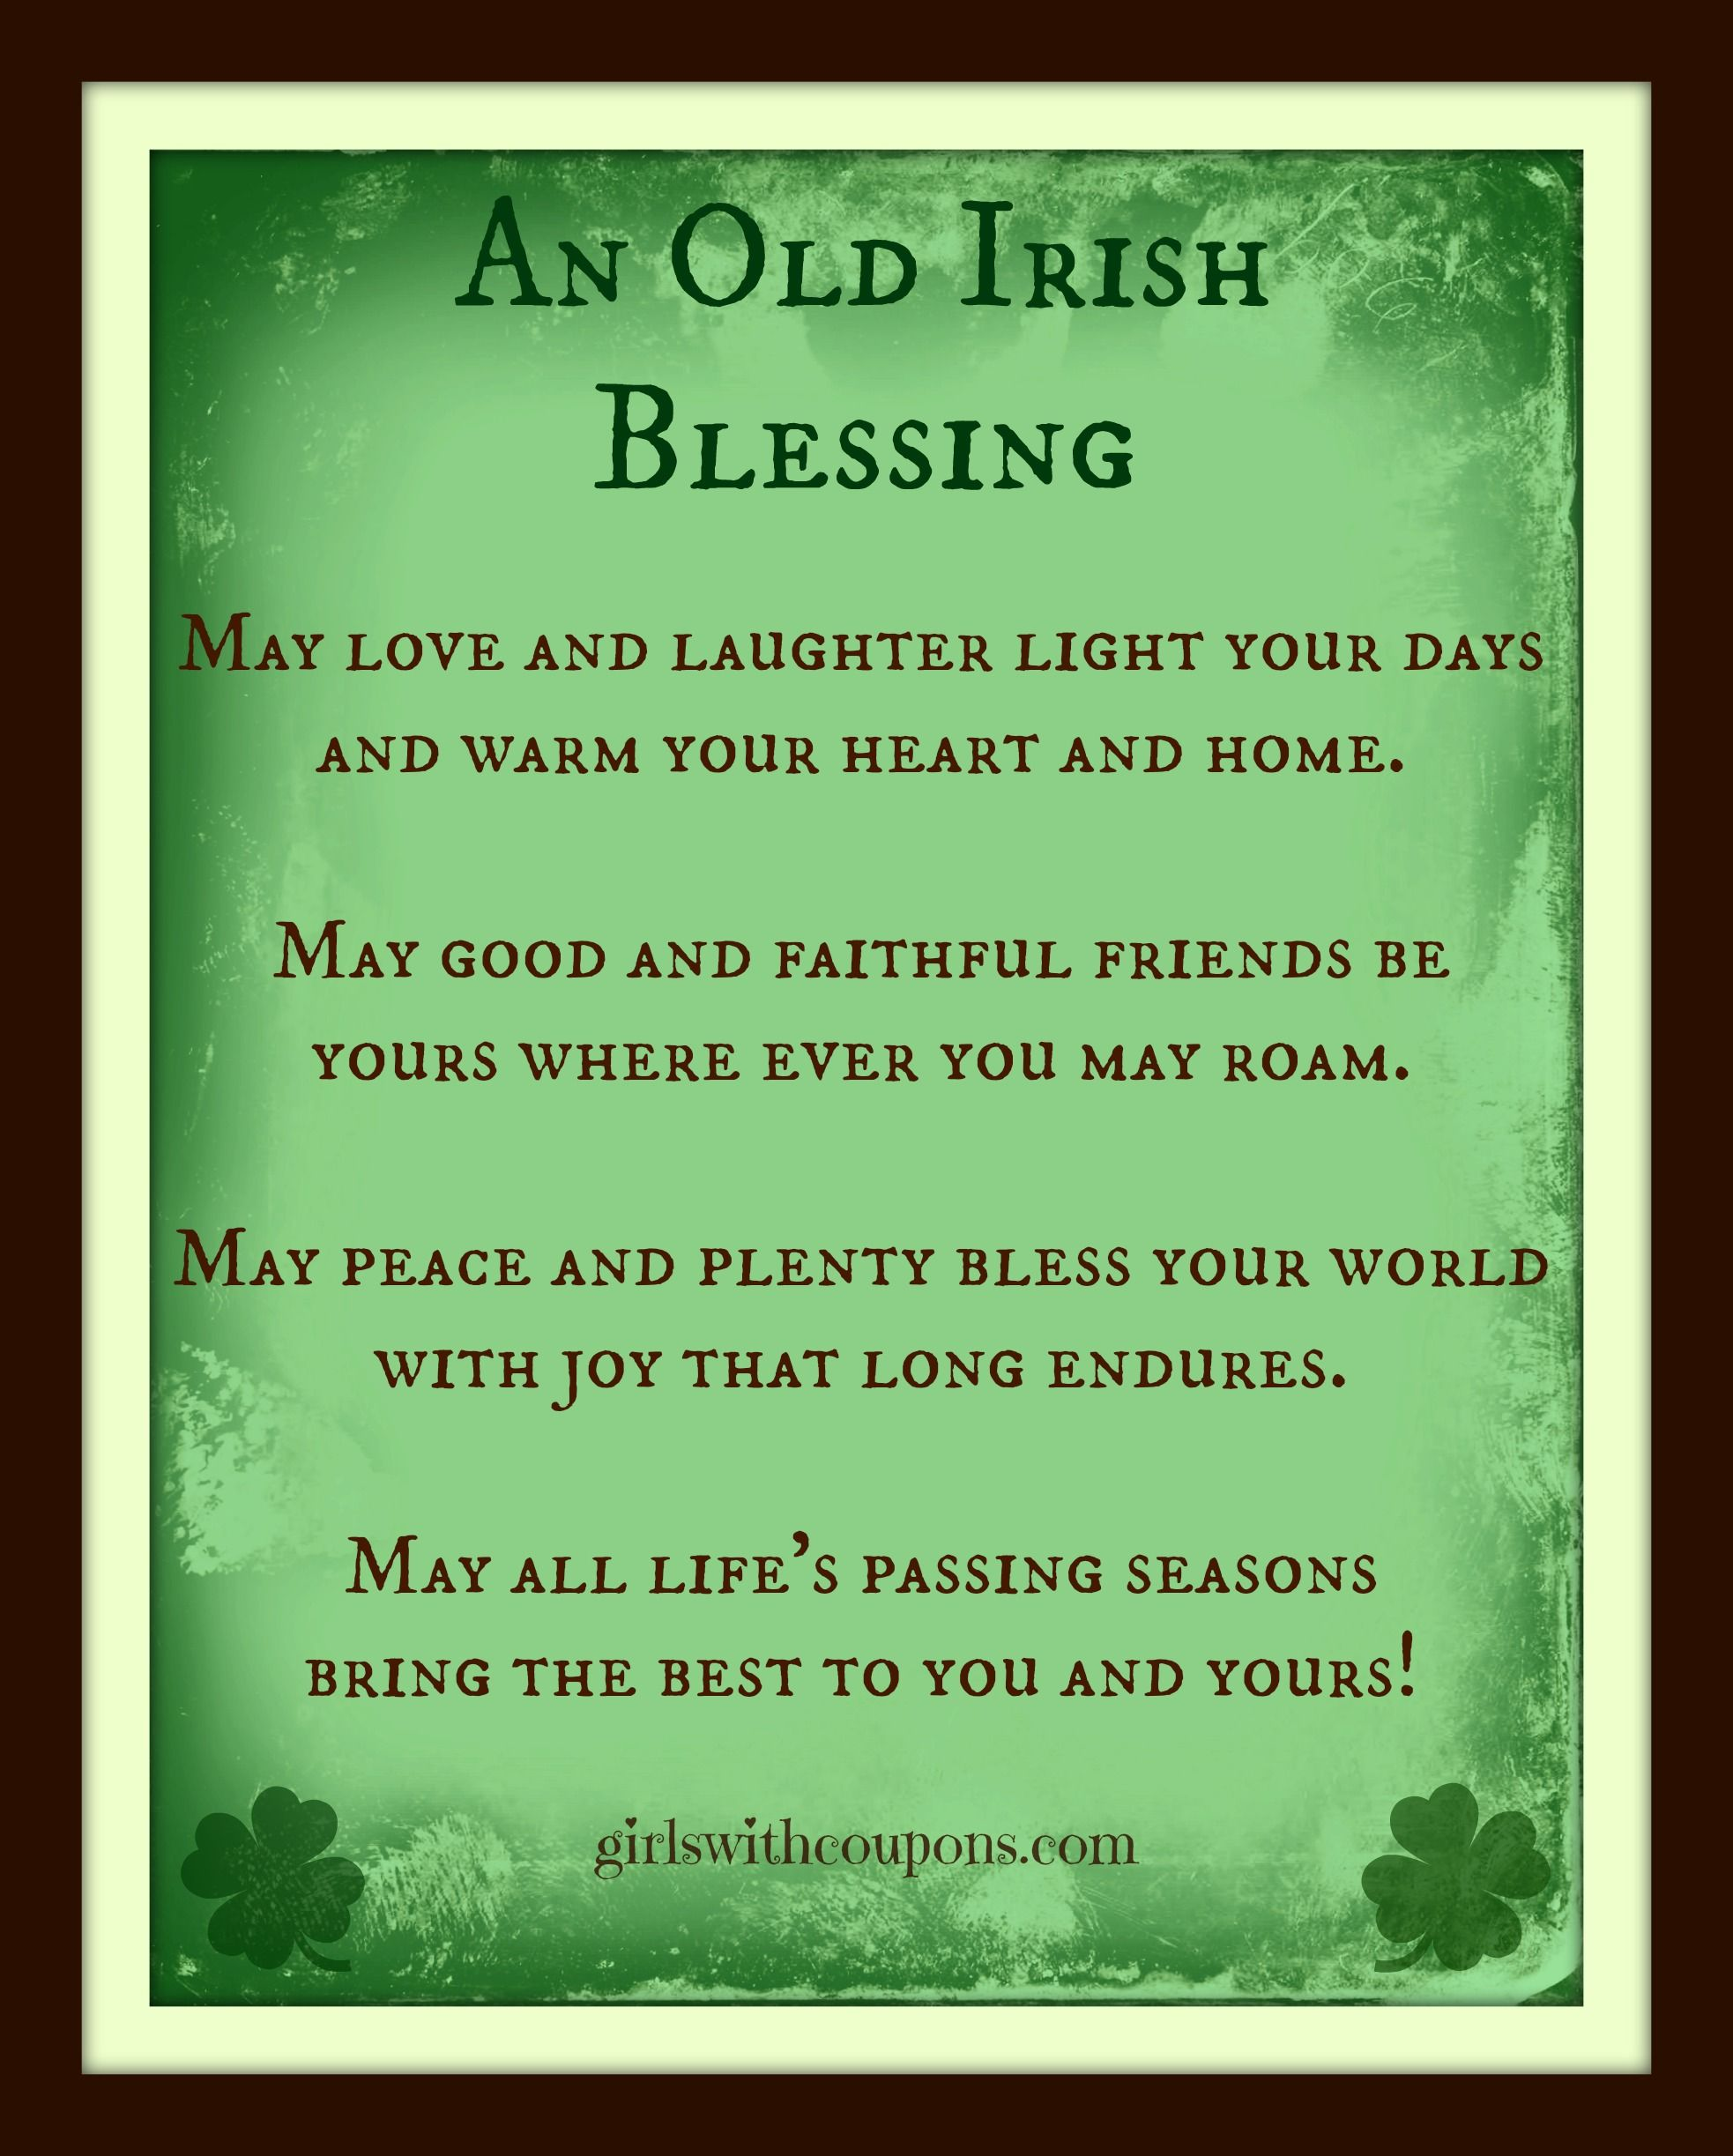 Blessings Quotes: An Old Irish Blessing